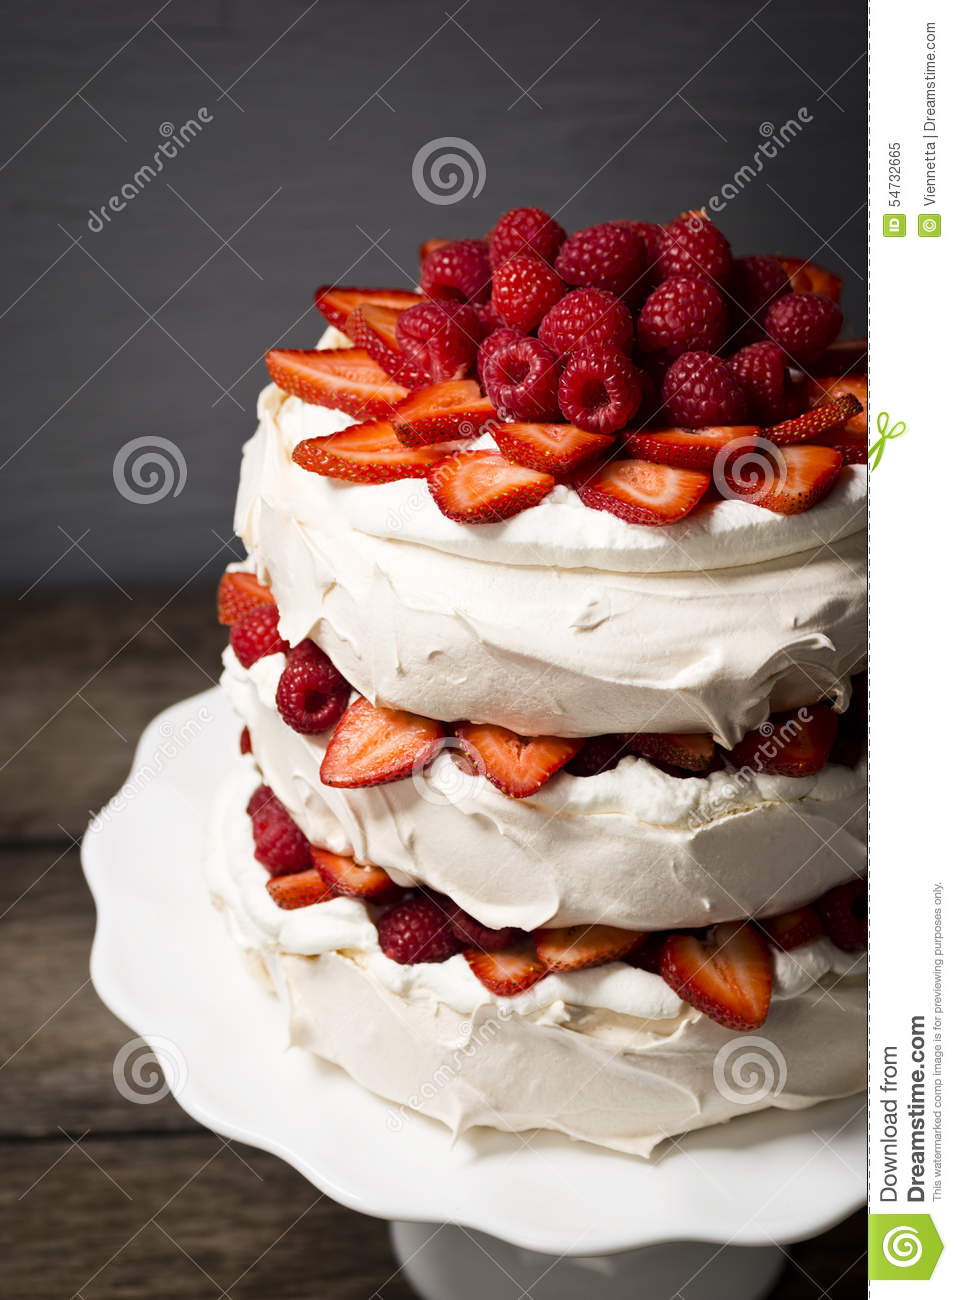 Raspberry and Strawberry Pavlova Cake